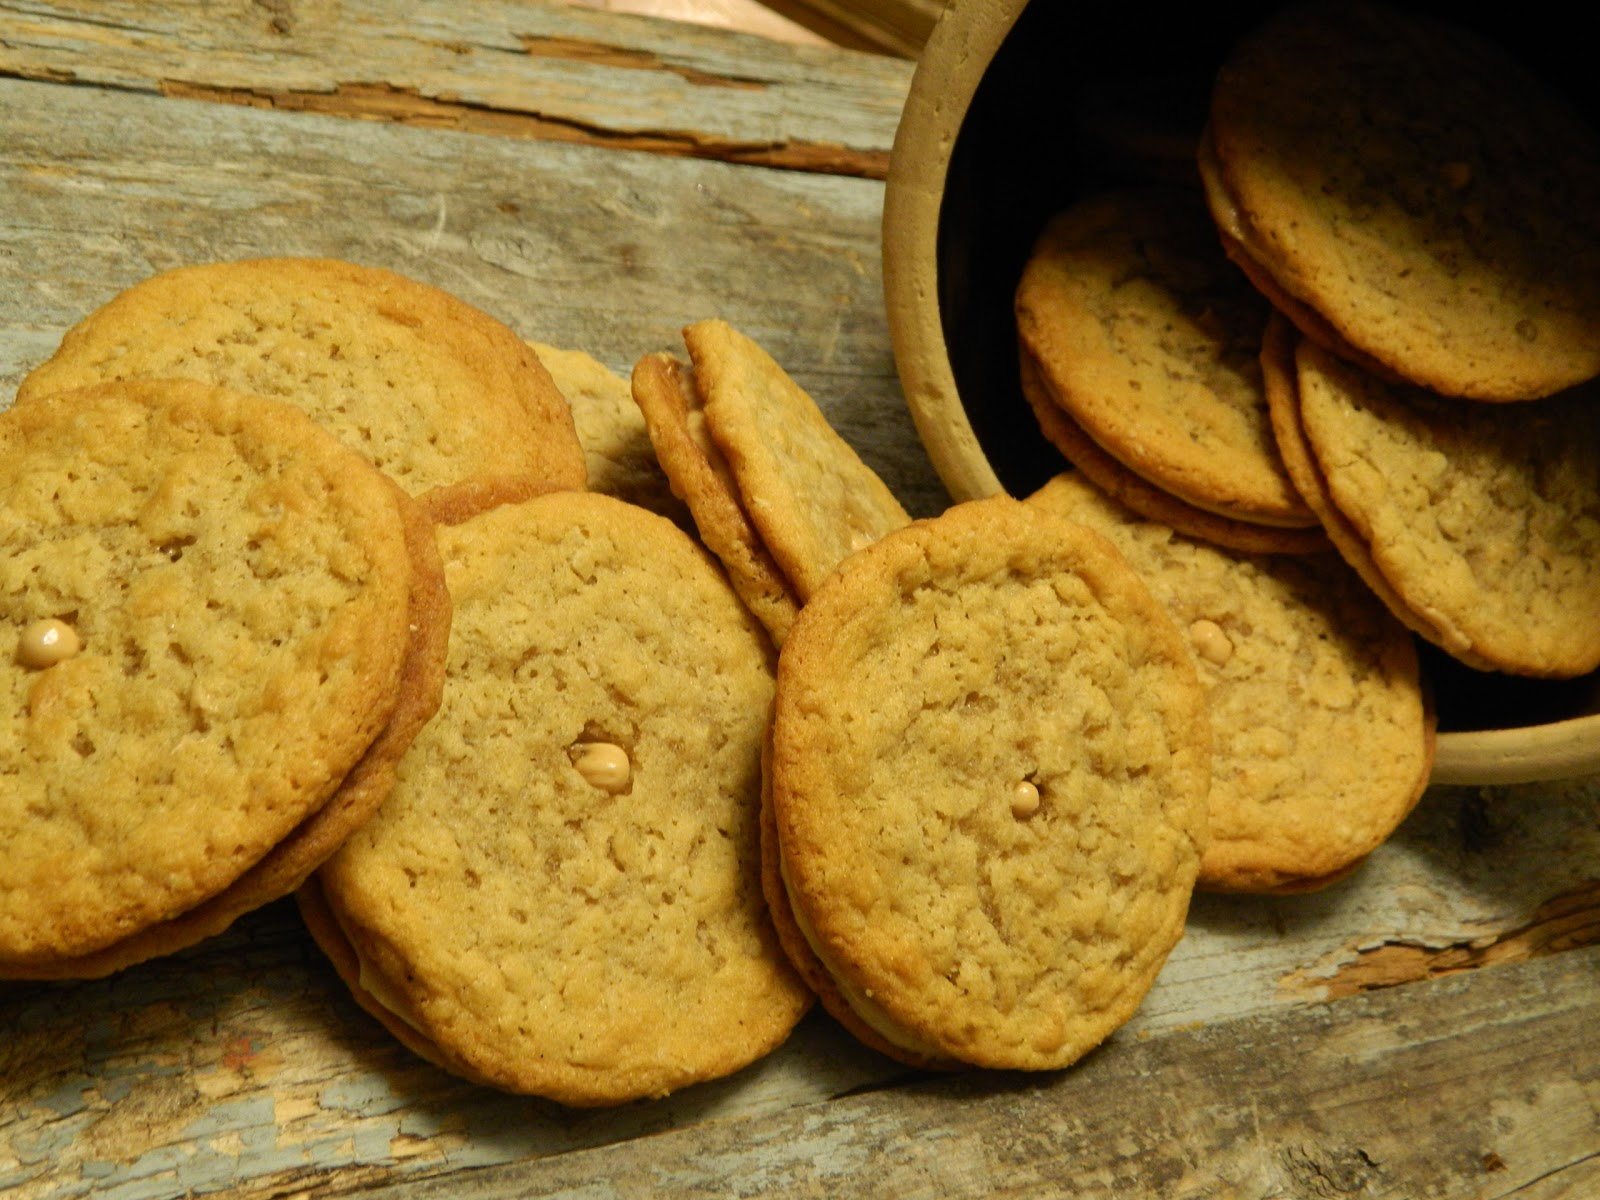 The Wednesday Baker: PEANUT BUTTER COOKIES AKA DO-SI-DOS